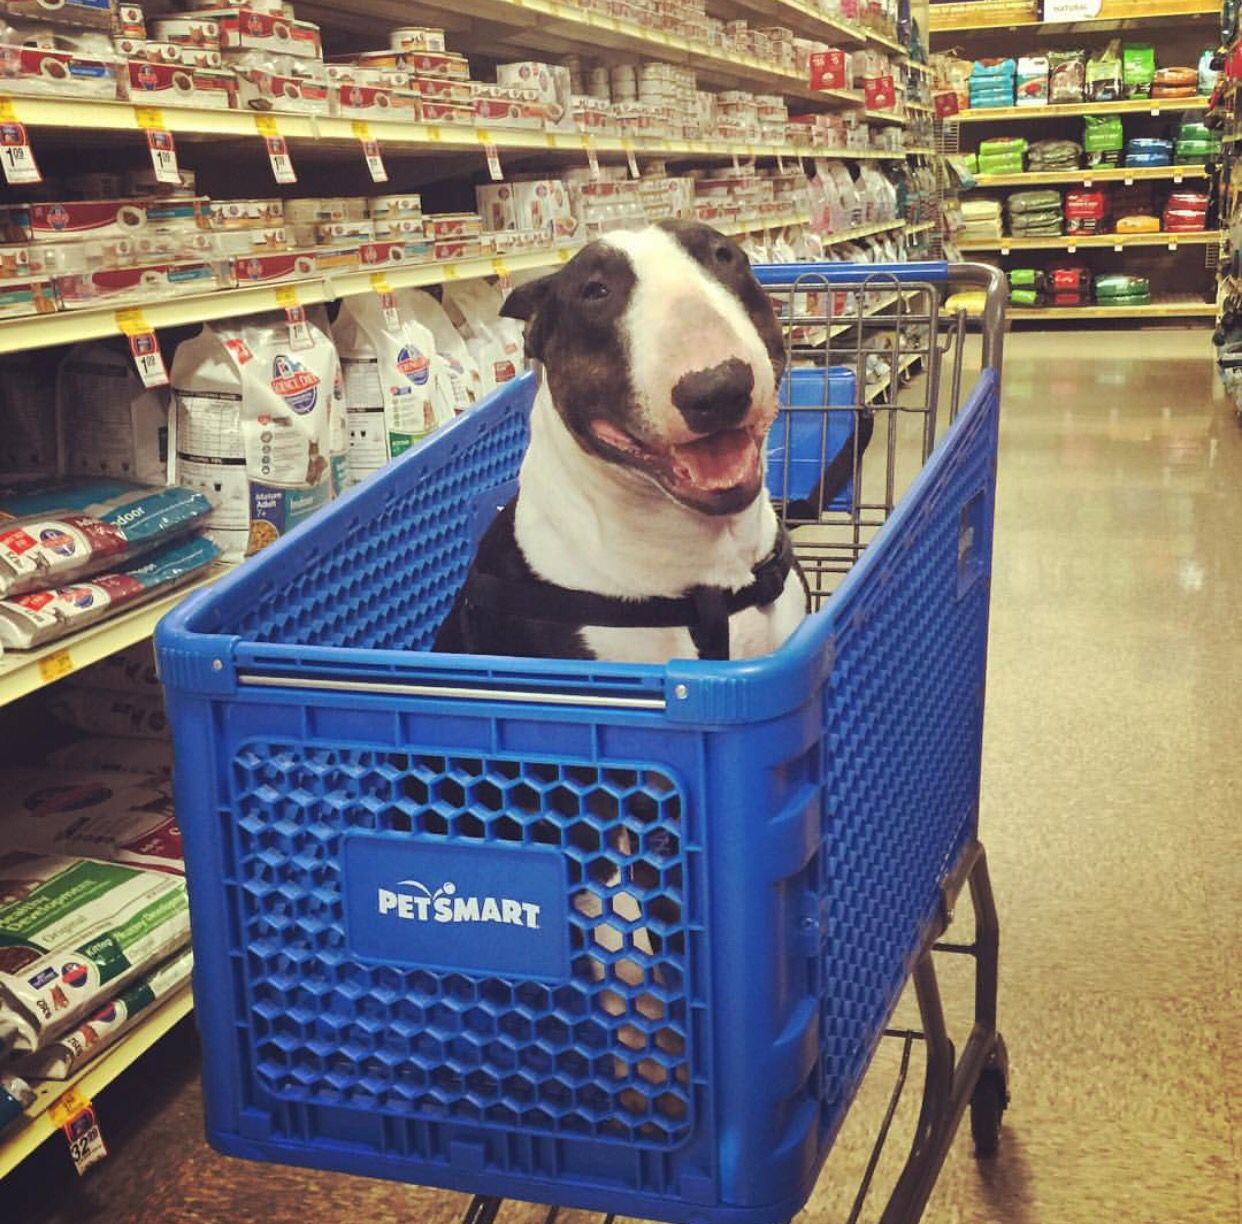 mom brought me to petsmart i u0027m gonna get some food and treats